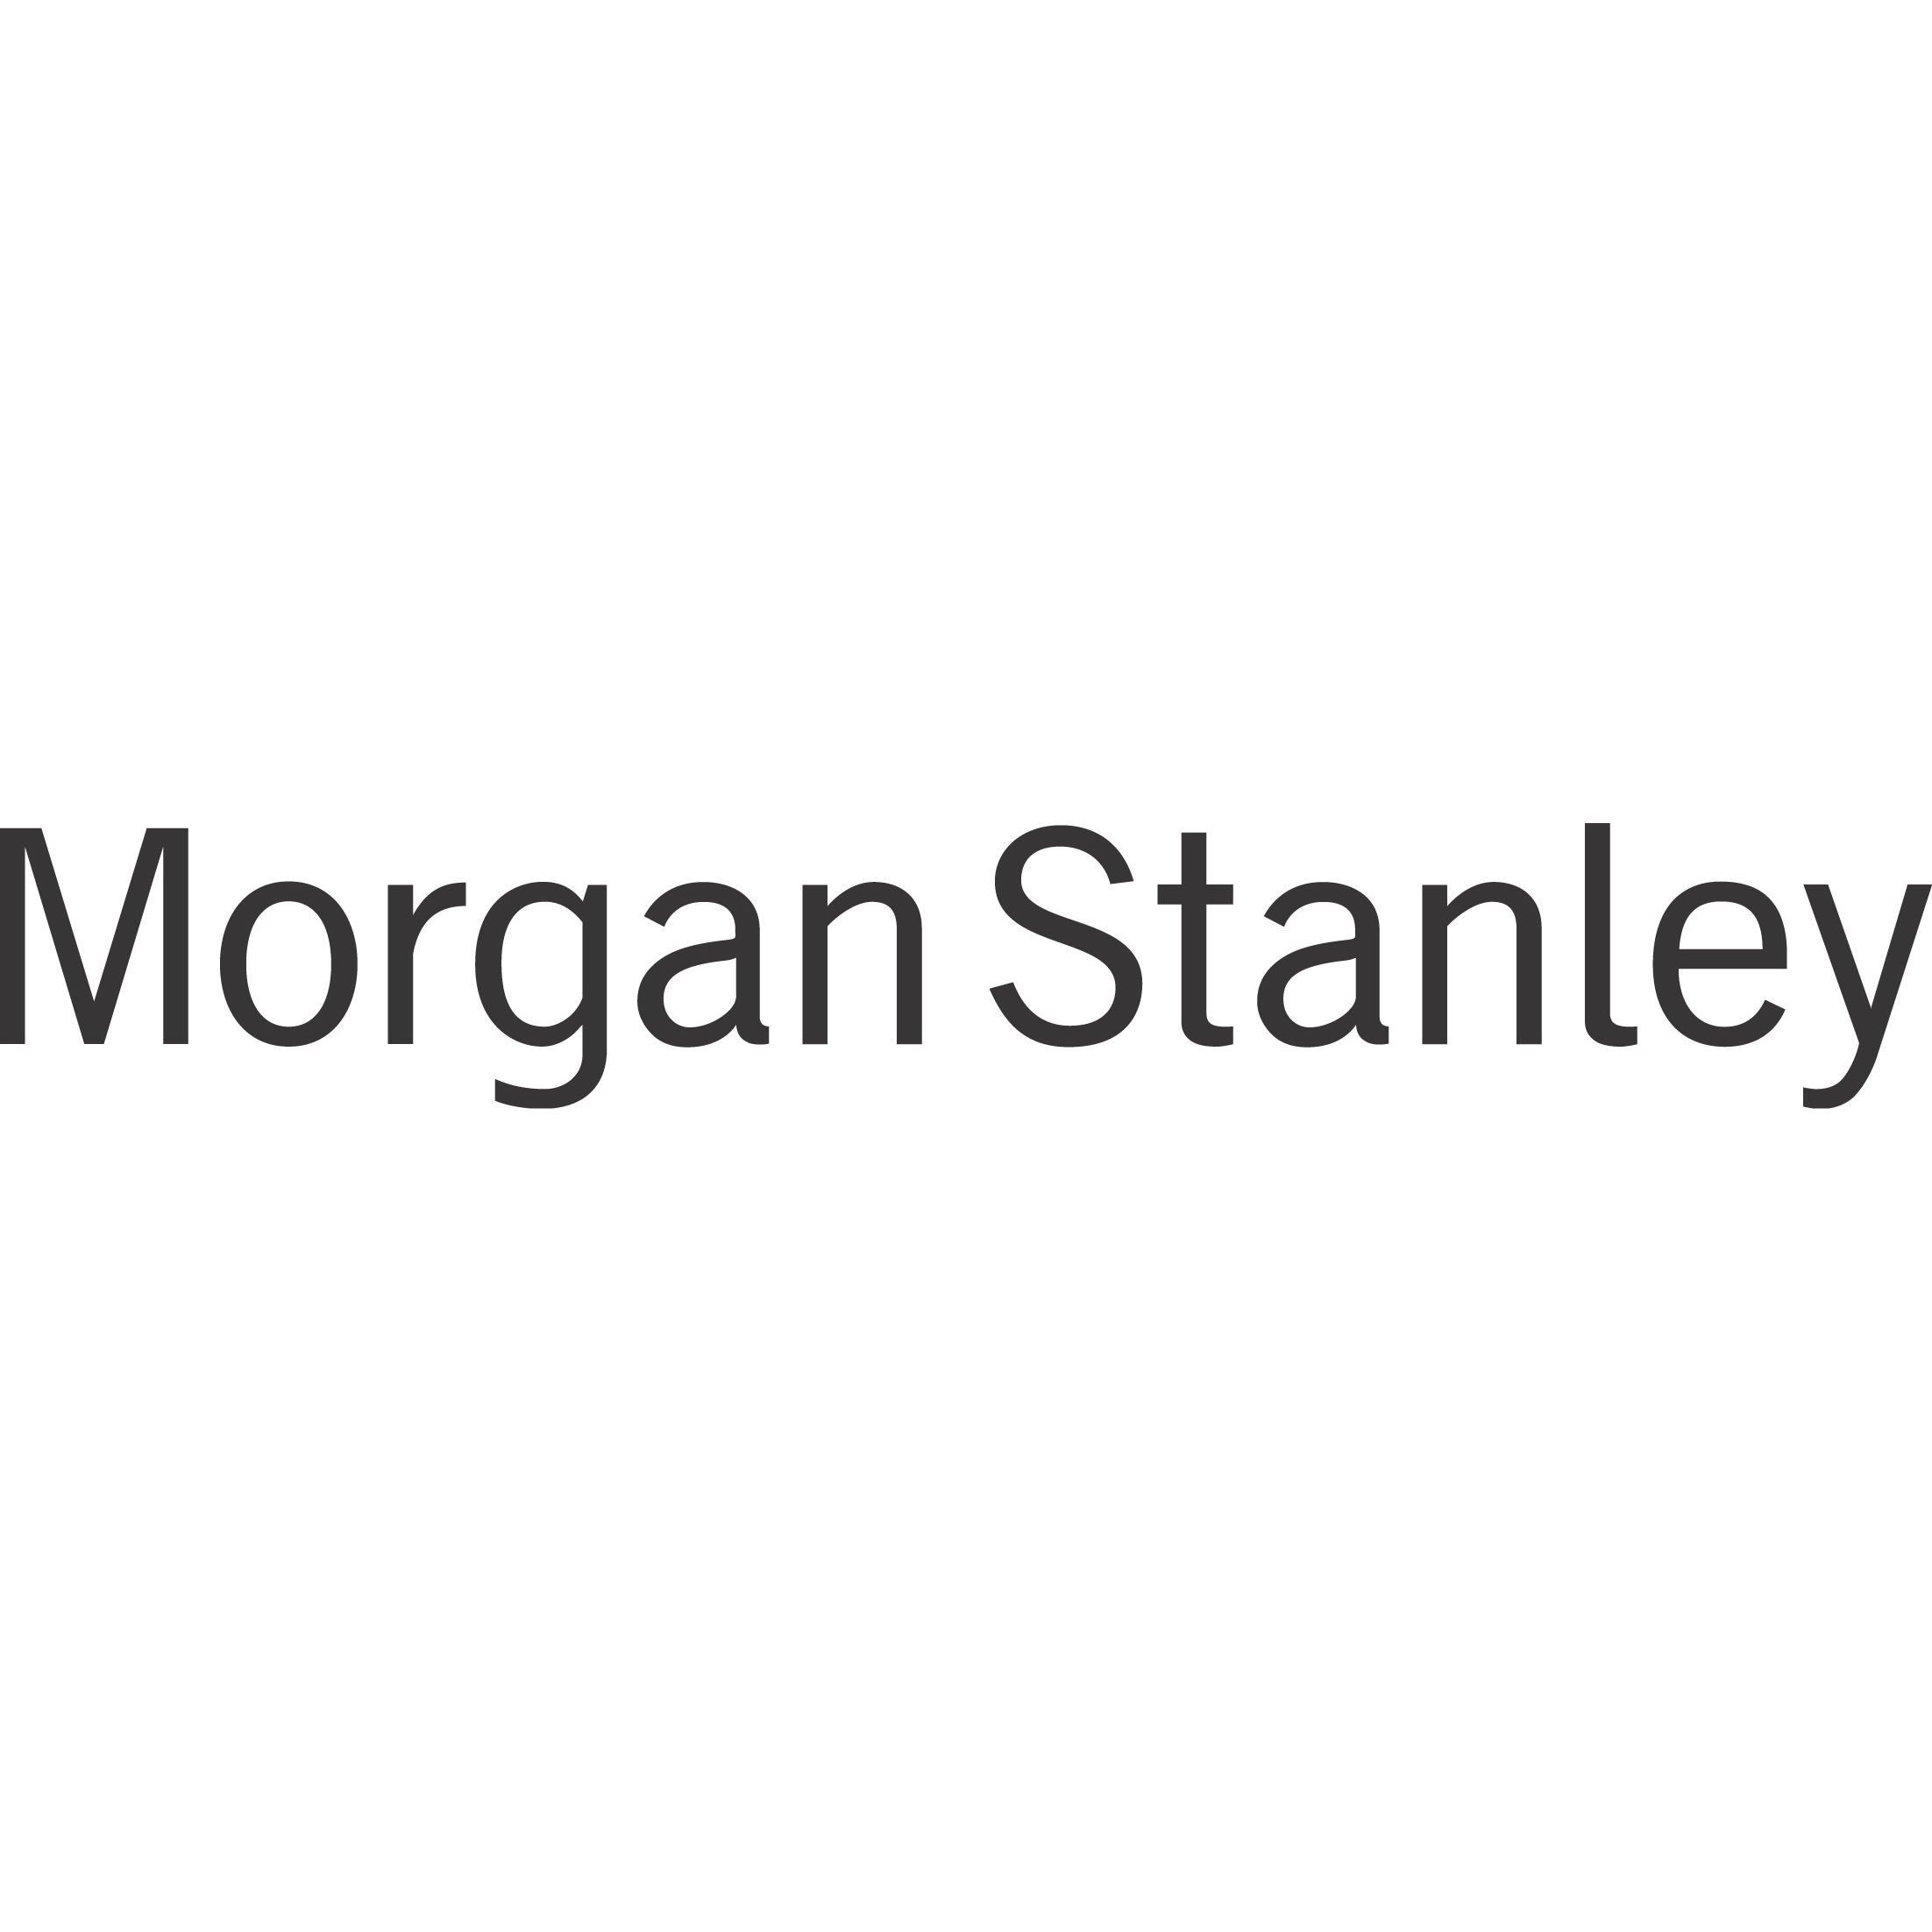 Jason E Chamberlain - Morgan Stanley | Financial Advisor in Baltimore,Maryland